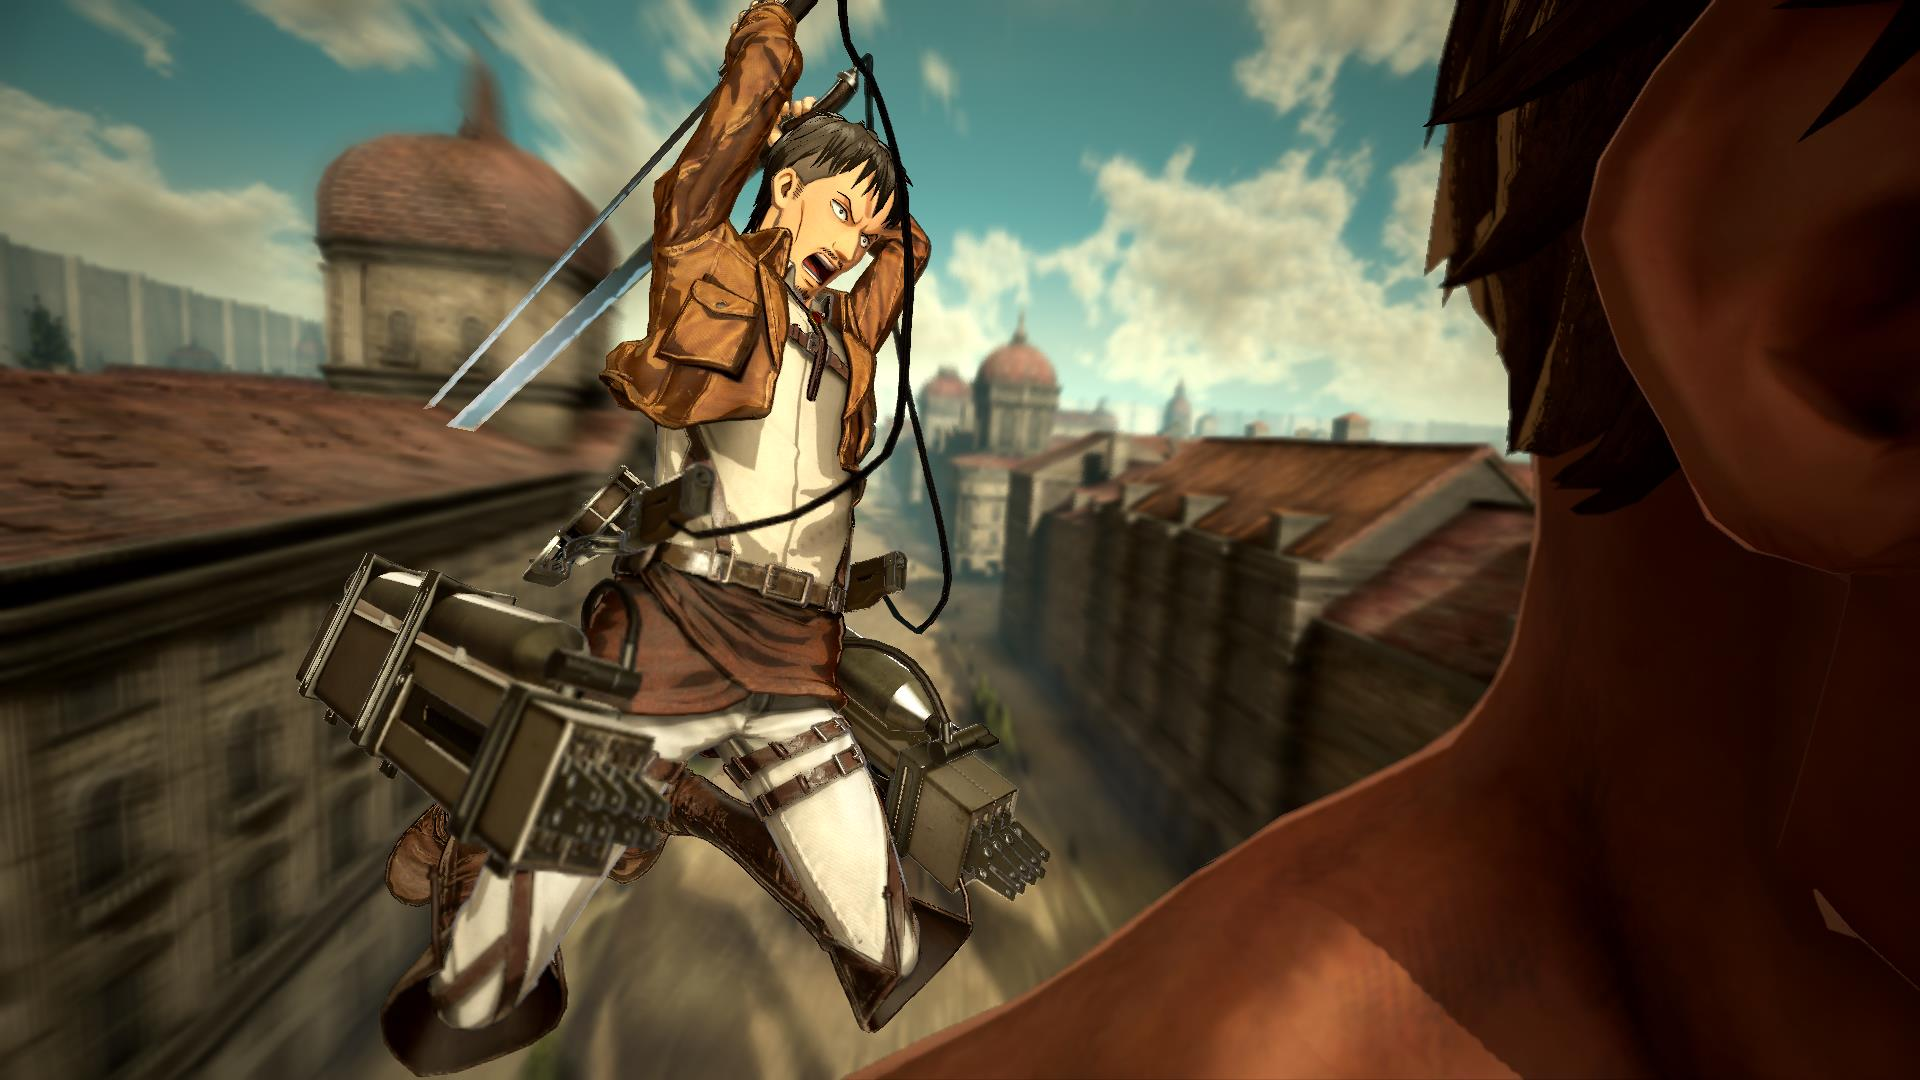 Attack on Titan 2: release dates, new trailer, and footage ...